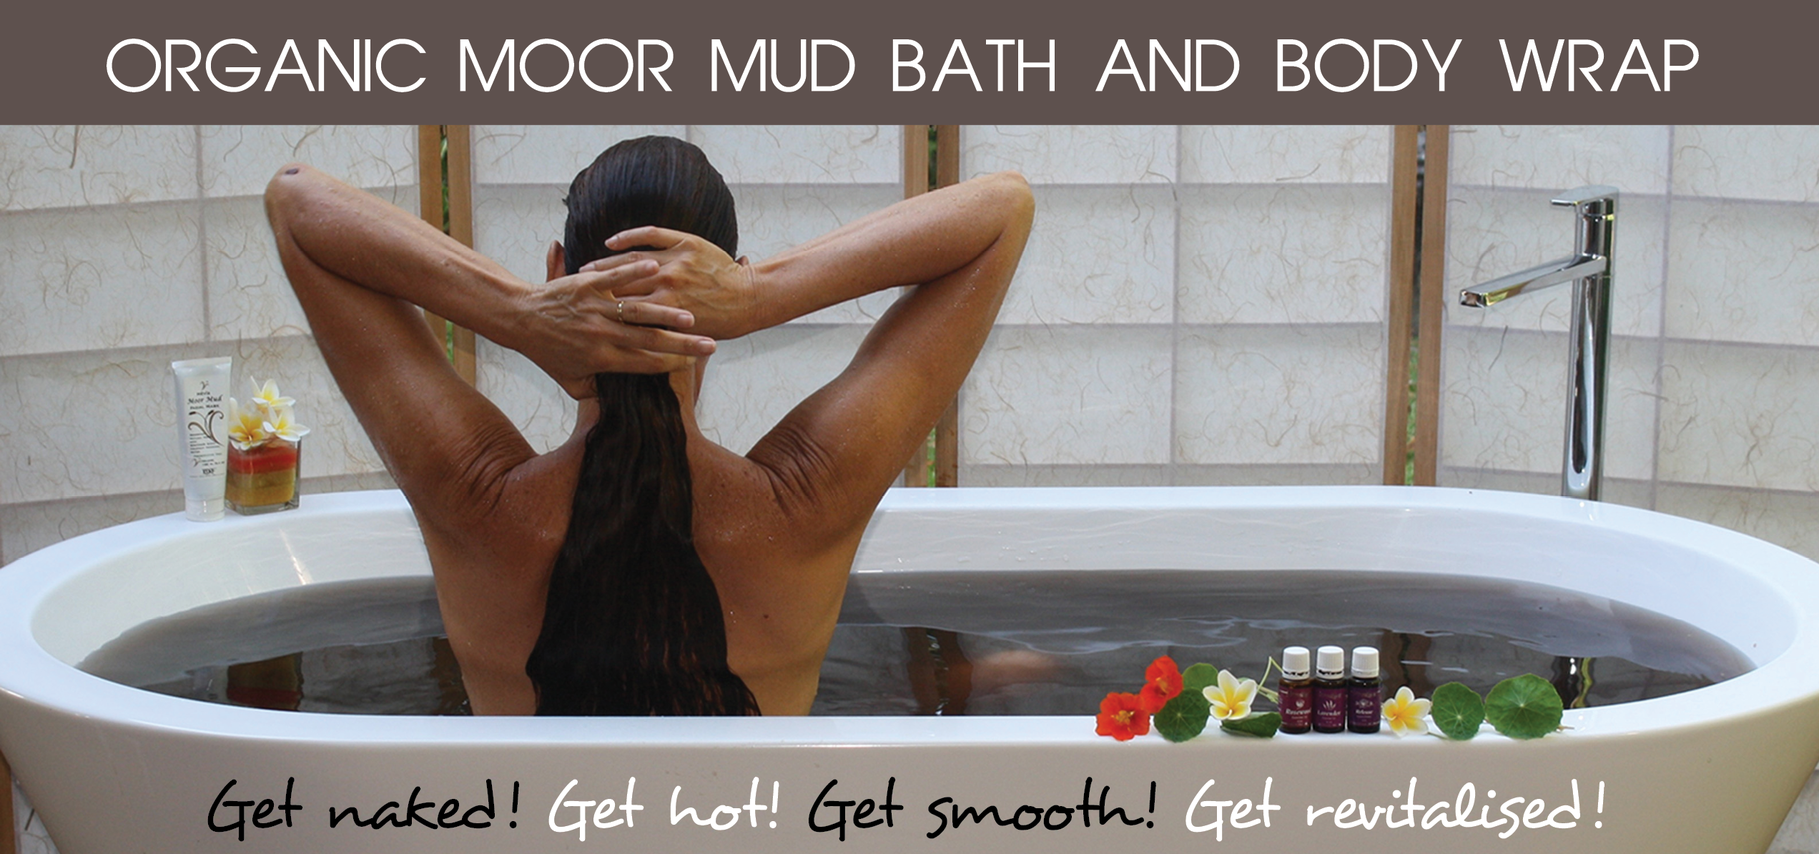 BUY RYL Moor Mud Bath & Body Wrap